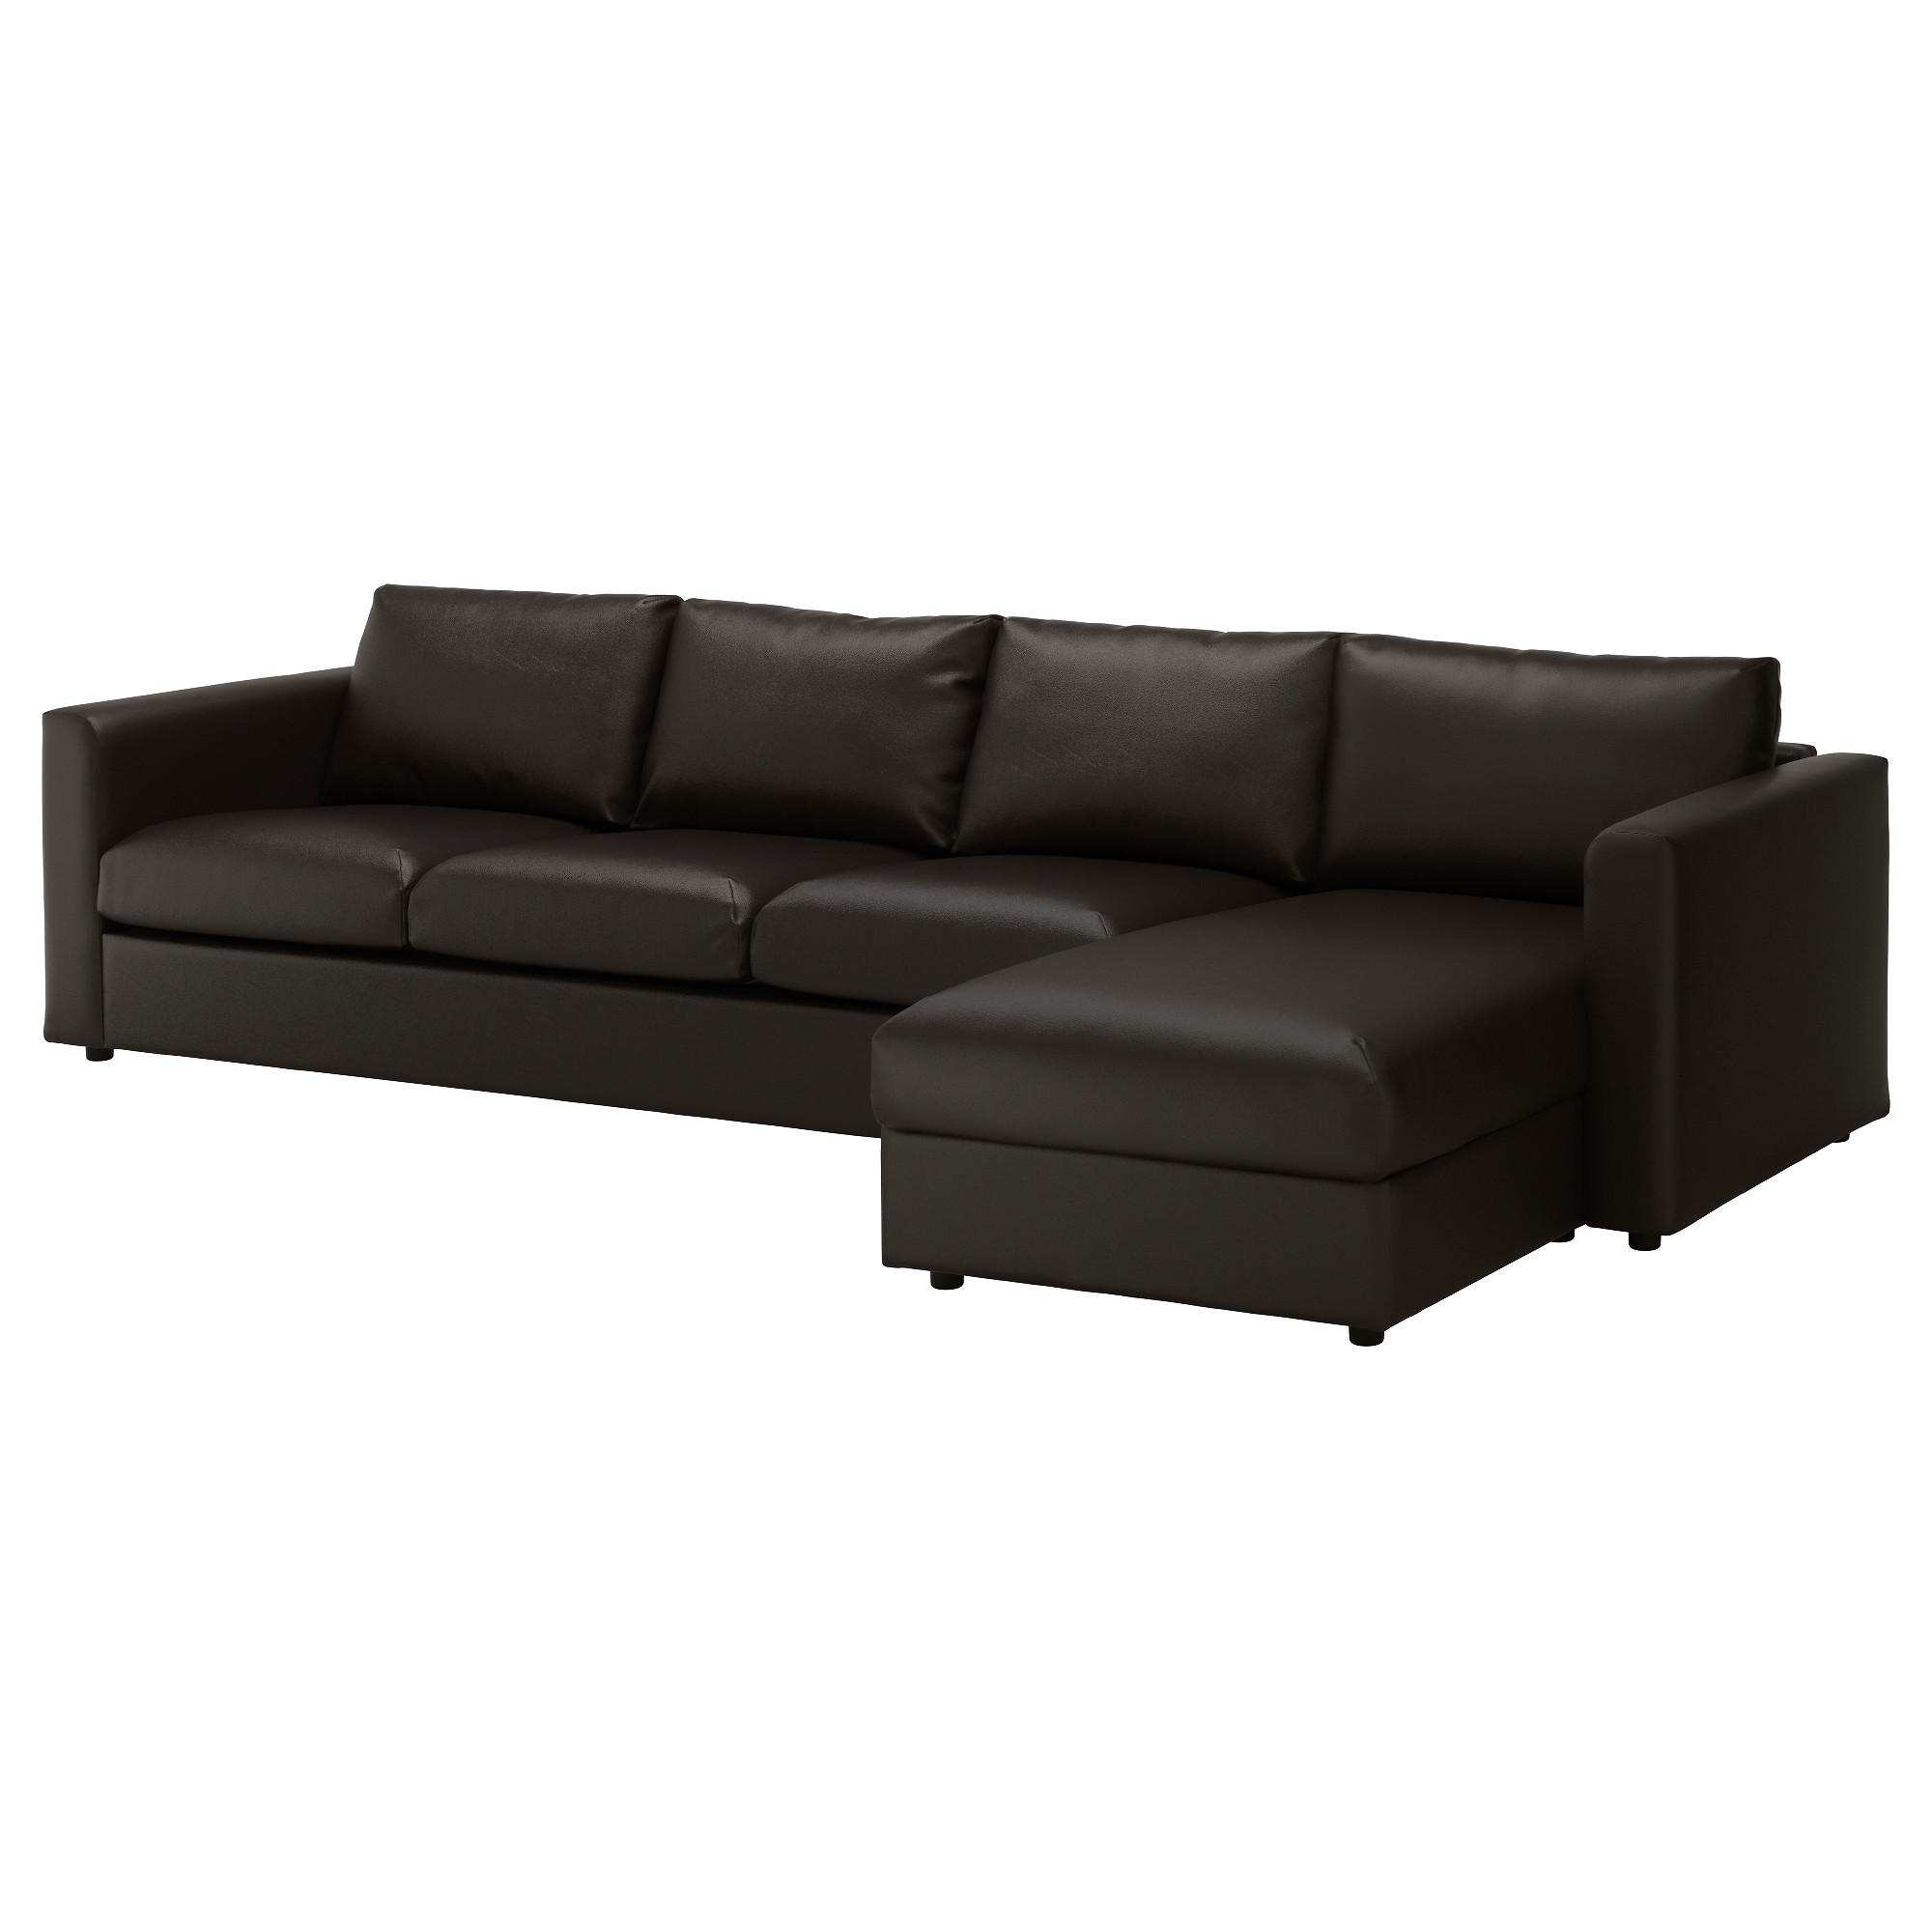 Vimle 4-Seat Sofa With Chaise Longue/farsta Black - Ikea regarding 4 Seat Sofas